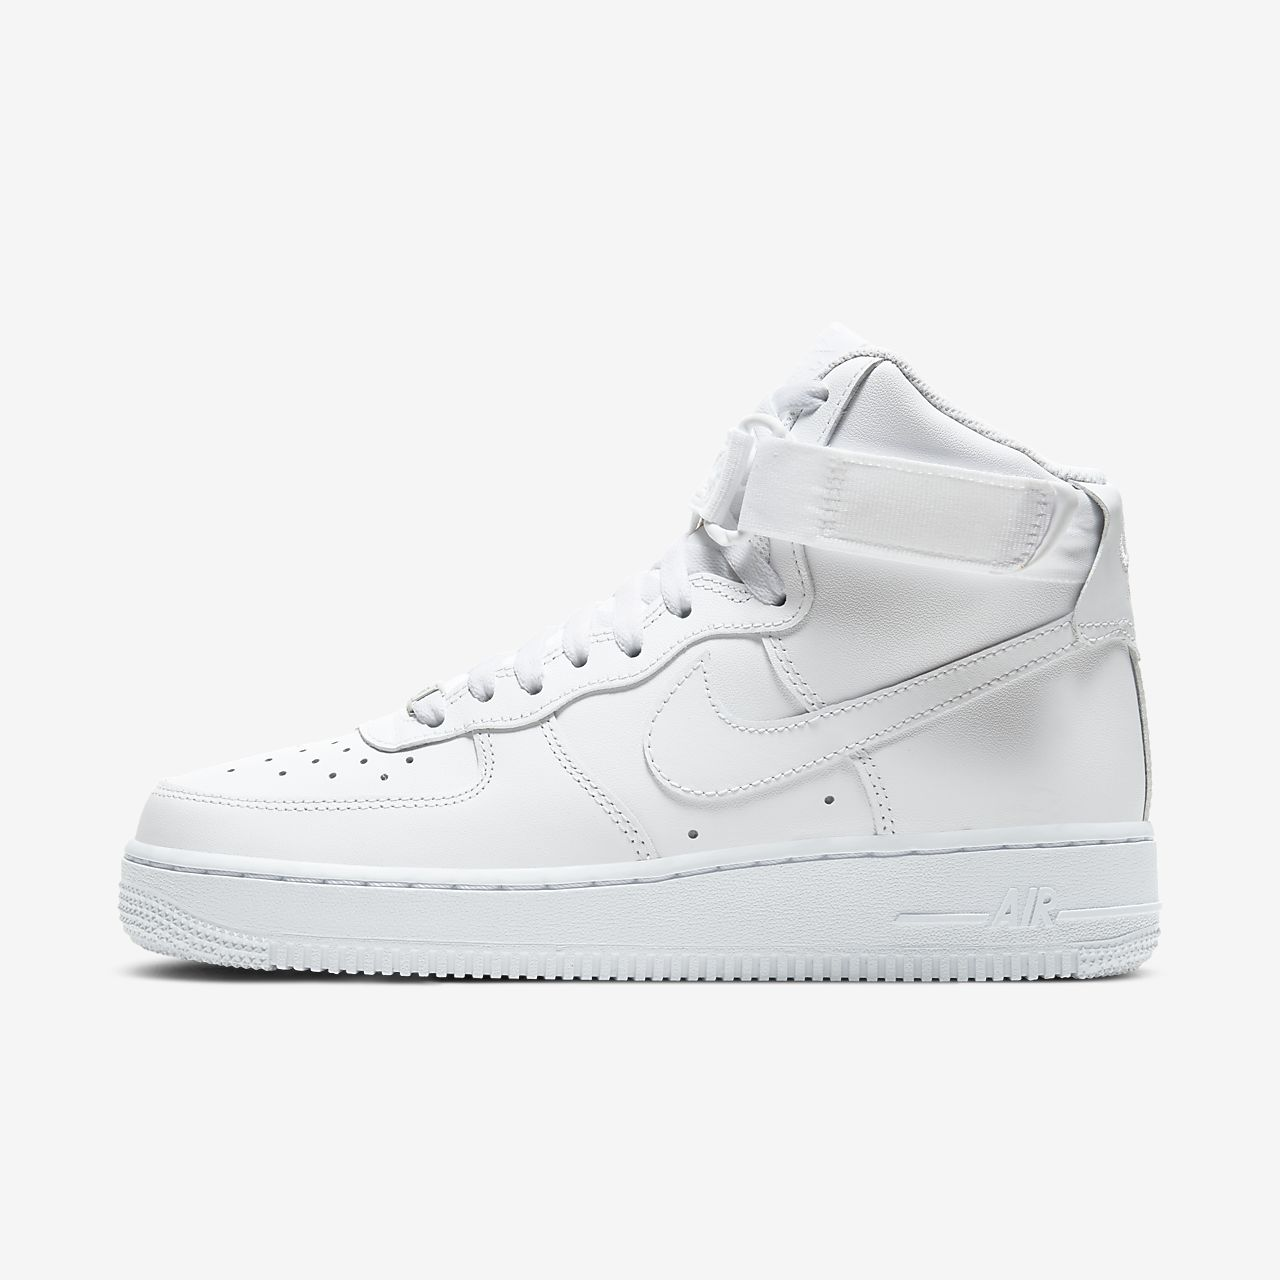 19357cdc836 Nike Air Force 1 High 08 LE Women s Shoe. Nike.com GB